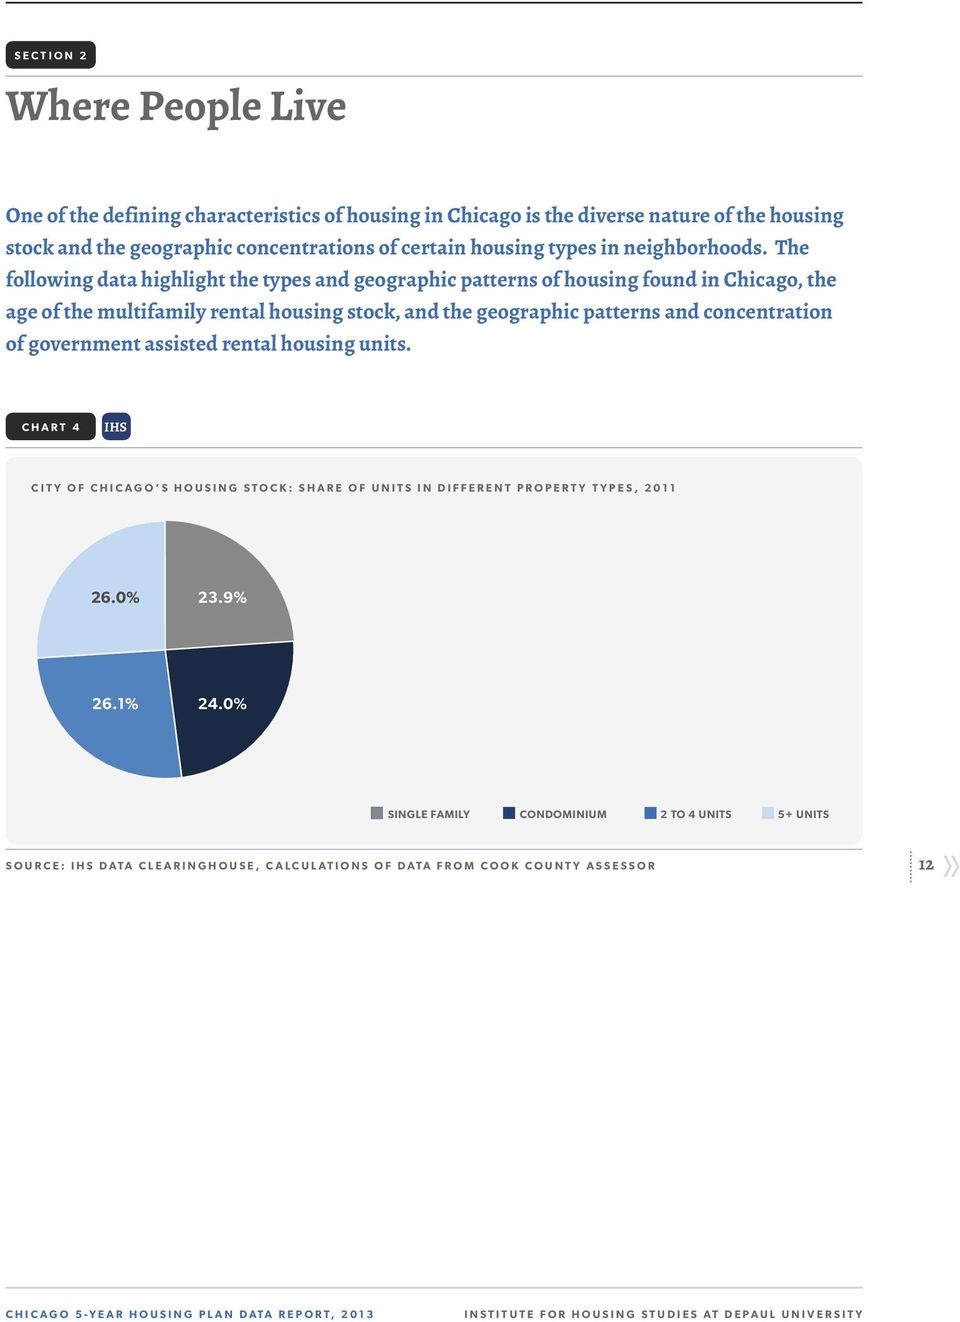 The following data highlight the types and geographic patterns of housing found in Chicago, the age of the multifamily rental housing stock, and the geographic patterns and